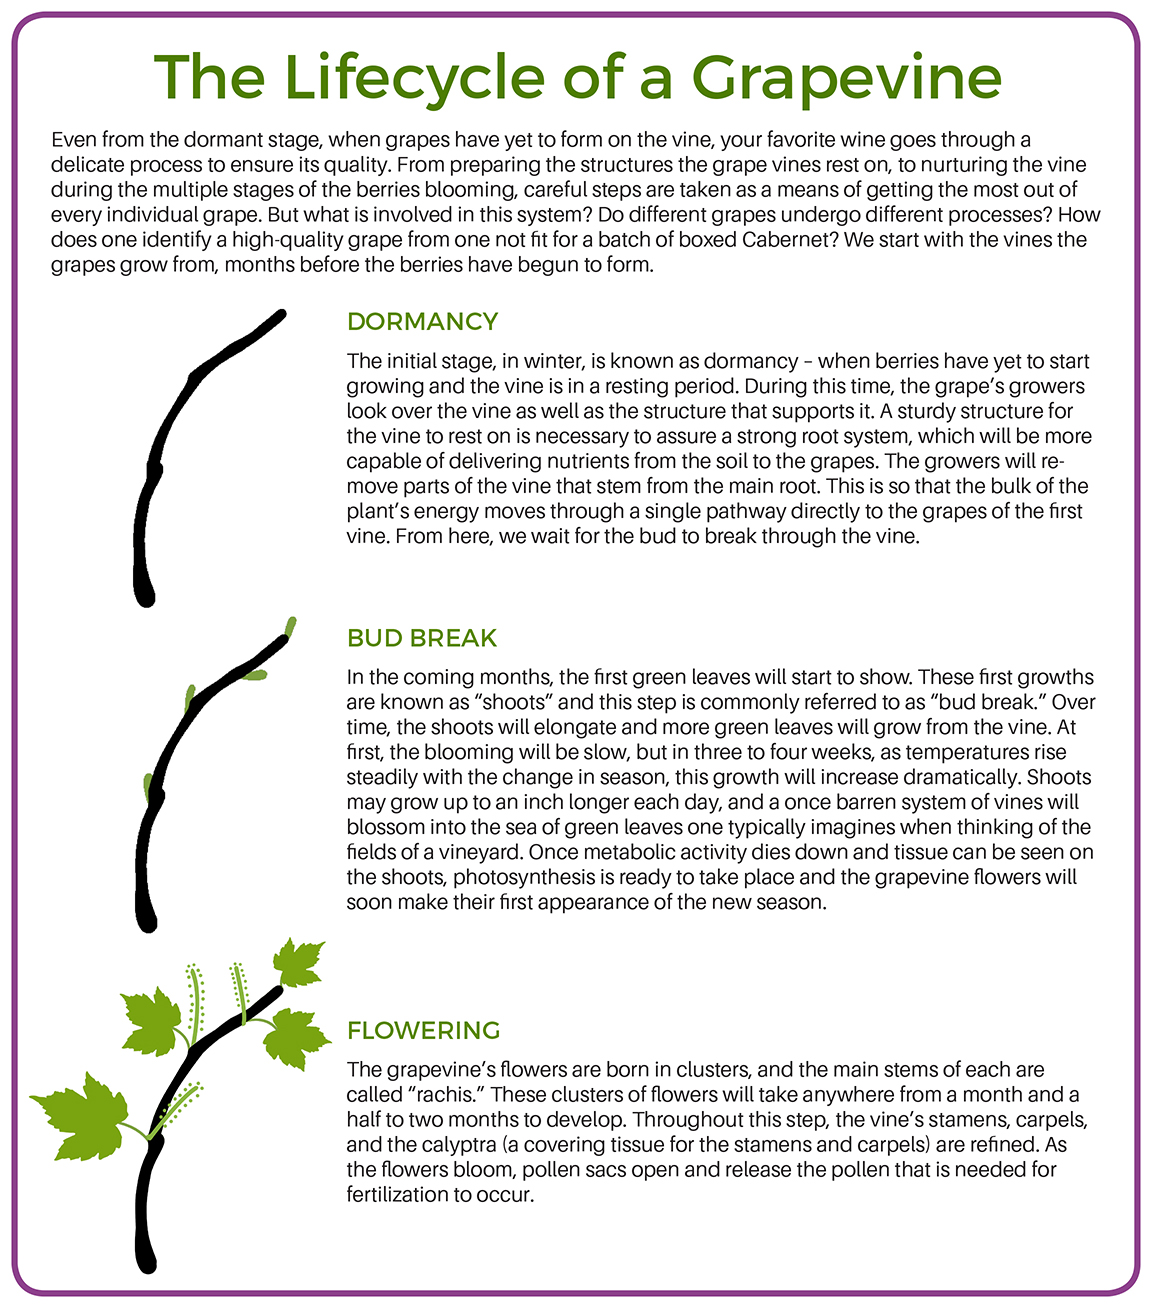 The Lifecycle of a Grapevine